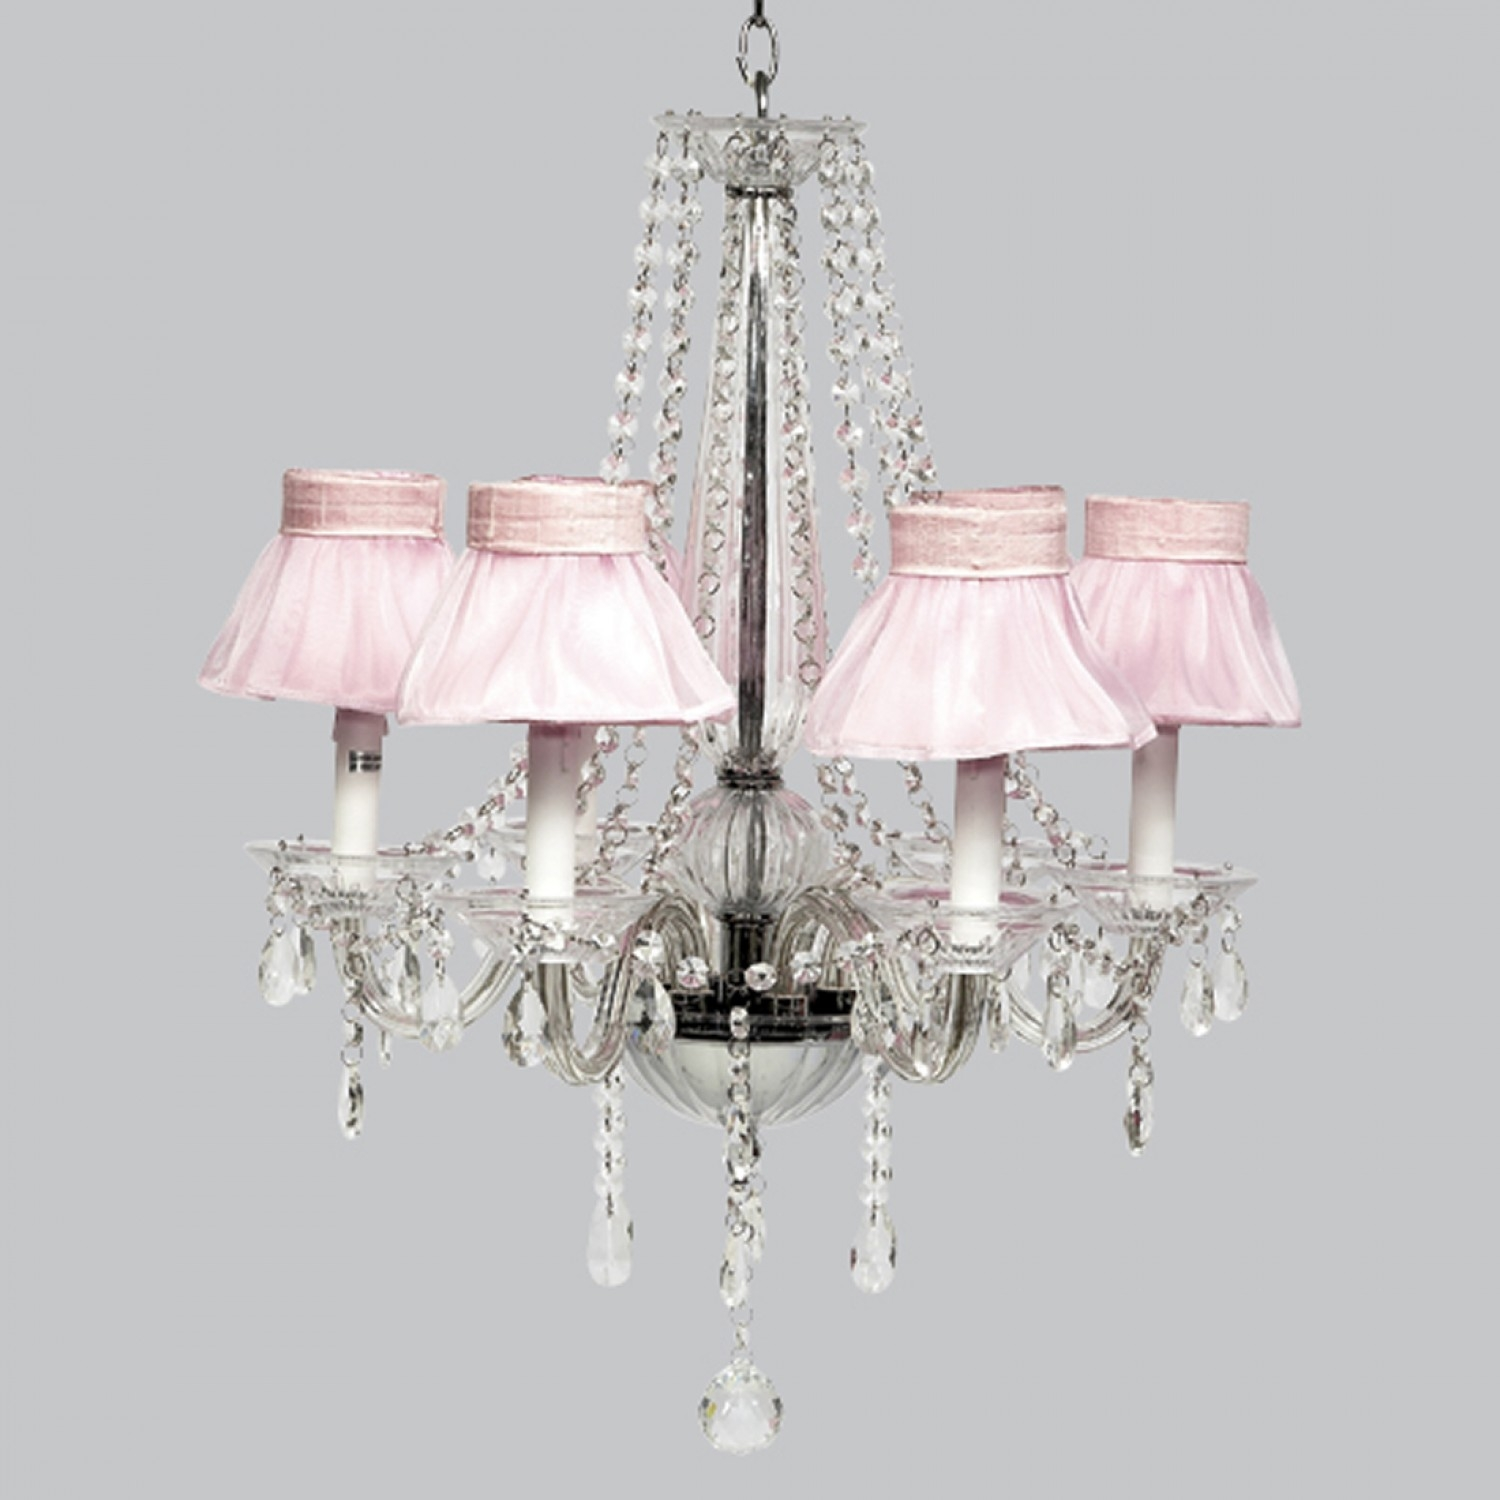 Chandelier Maxresdefault Diy Chandelier Lamp Lampshade Treshaja In Chandelier Lamp Shades (Image 11 of 25)